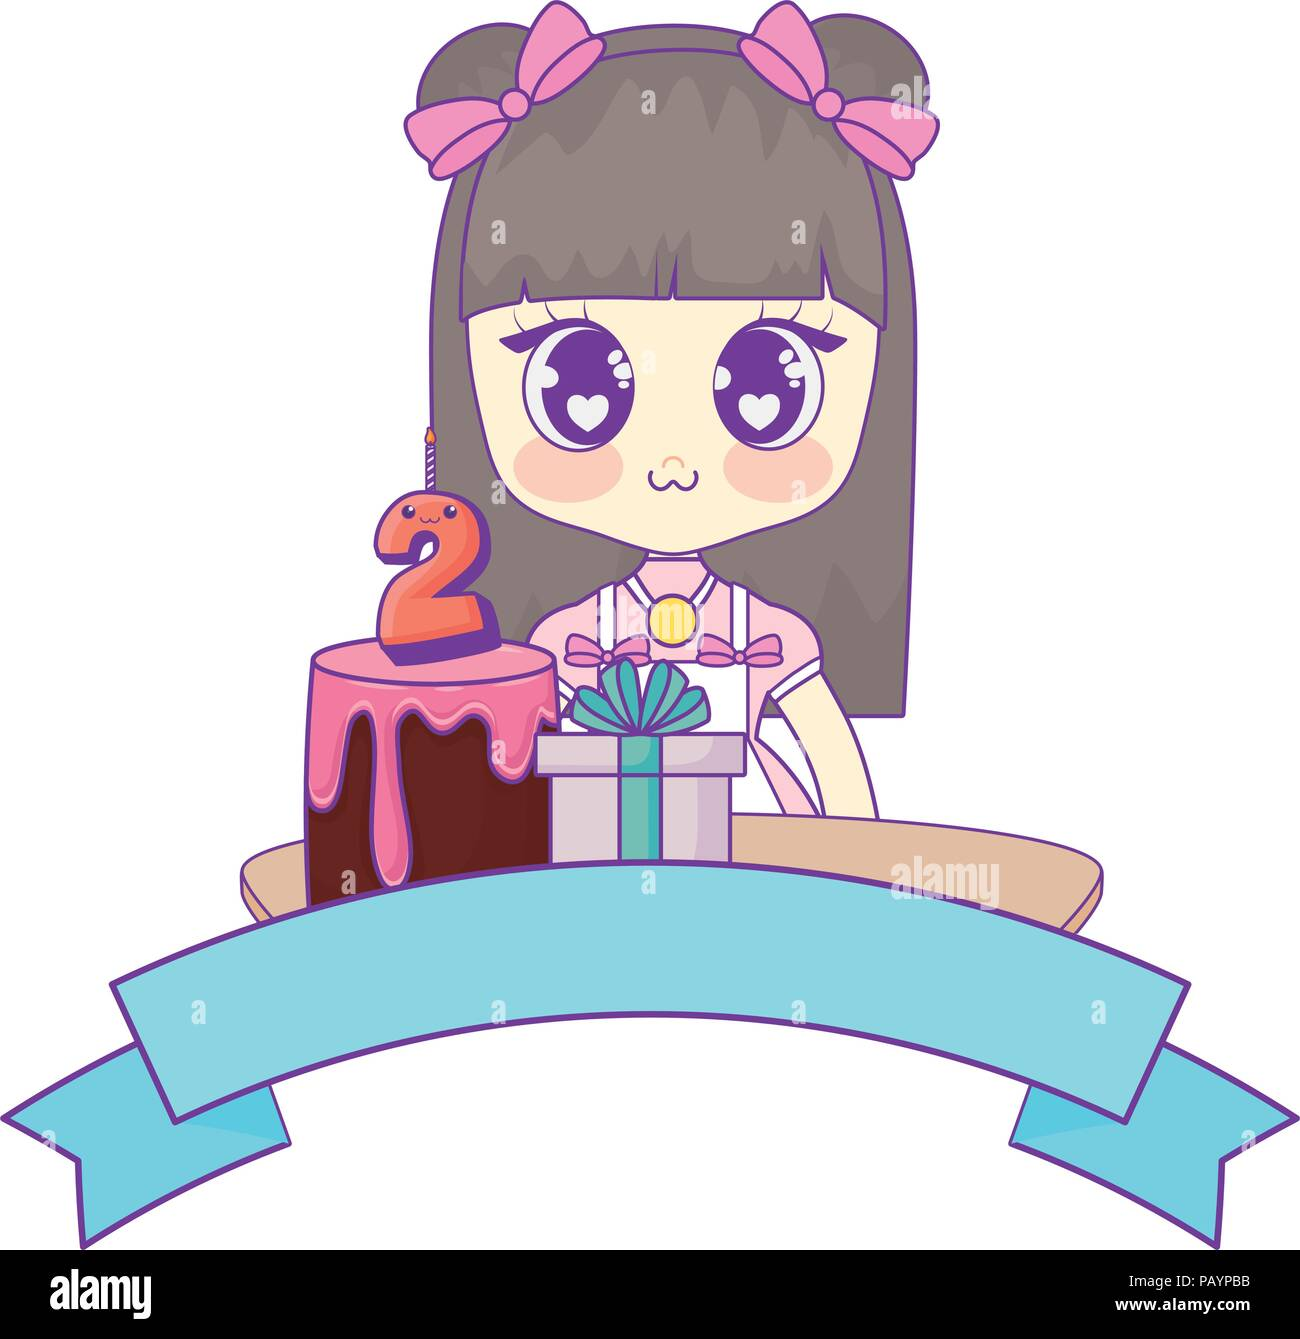 Anime Girl With Birthday Cake And Decorative Ribbon Over White